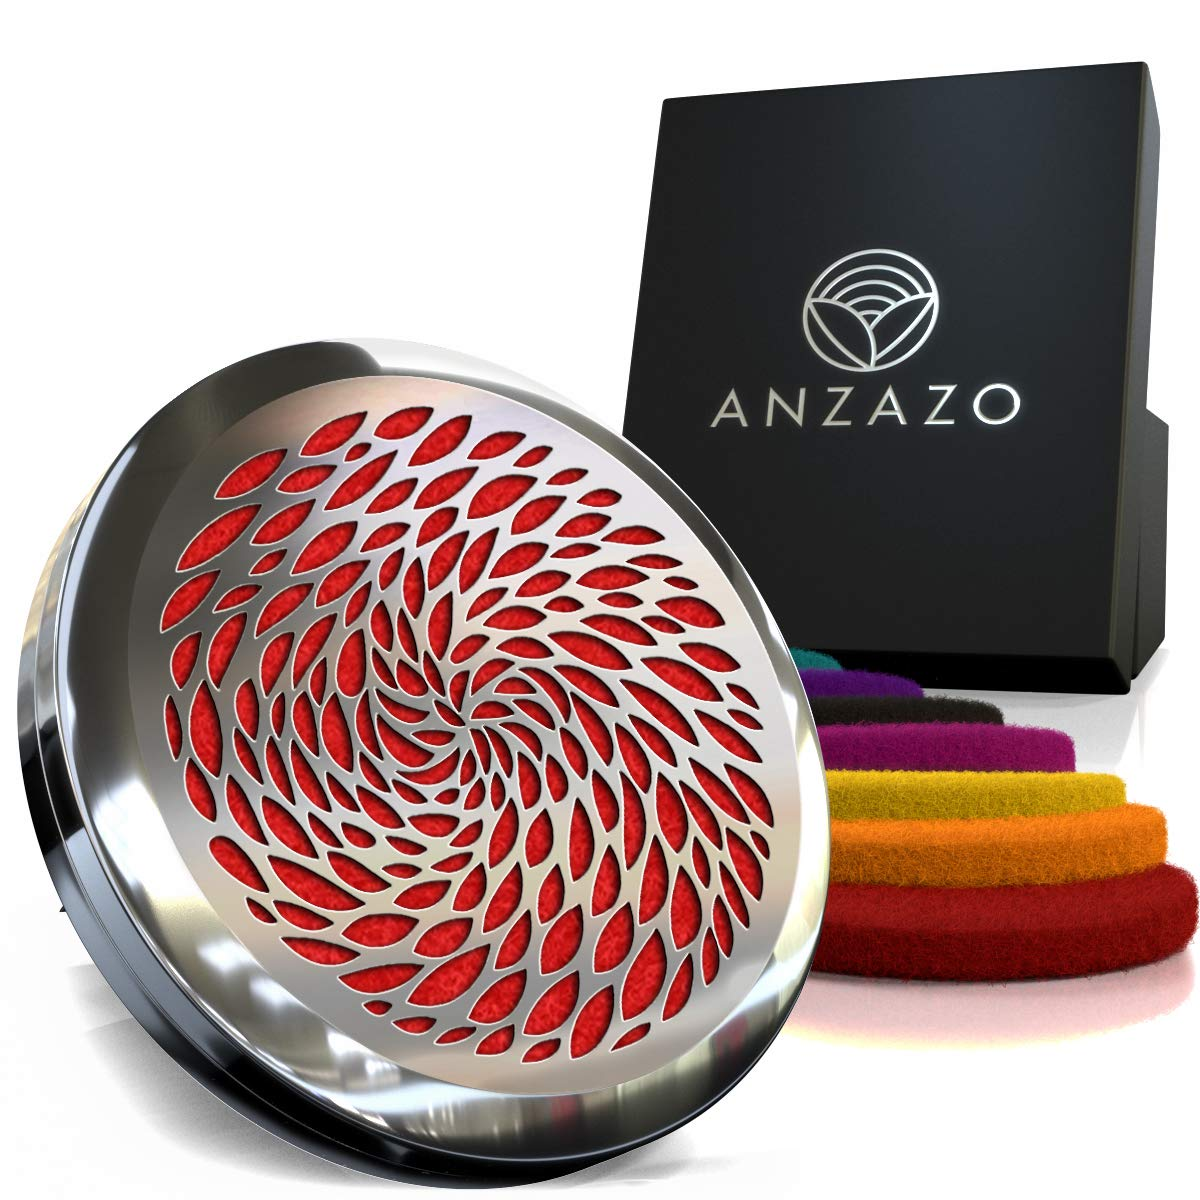 Anzazo Car Essential Oil Diffuser - 1.5' Magnetic Locket Set with Air Vent Clip - Best for Aromatherapy - Fragrance Air Freshener, Scents Diffusers - Jewelry for Car, Retro Leafs